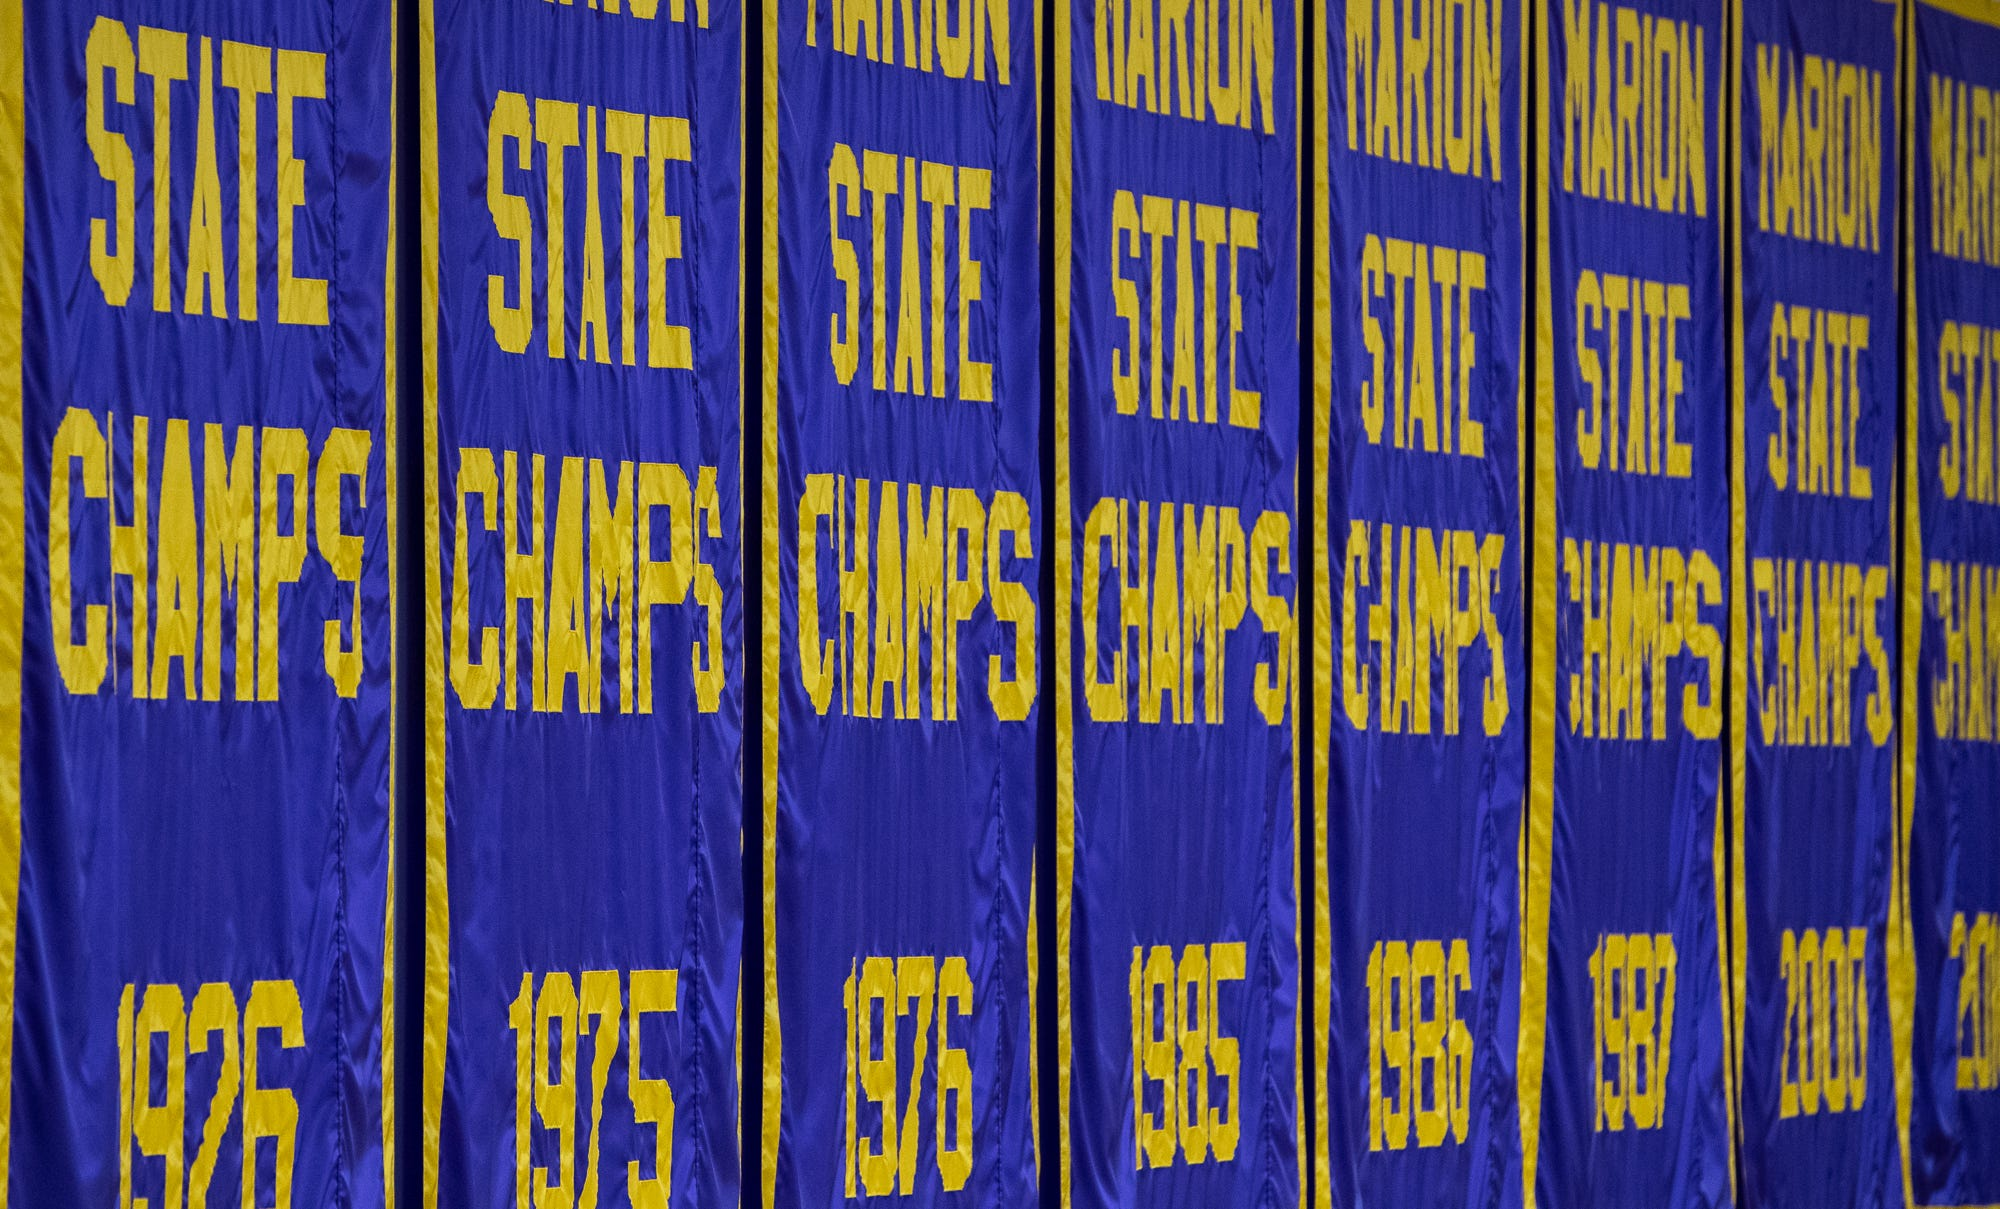 Eight state champion banners fly inside Marion High School's Bill Green Arena on Friday, Feb. 28, 2020.